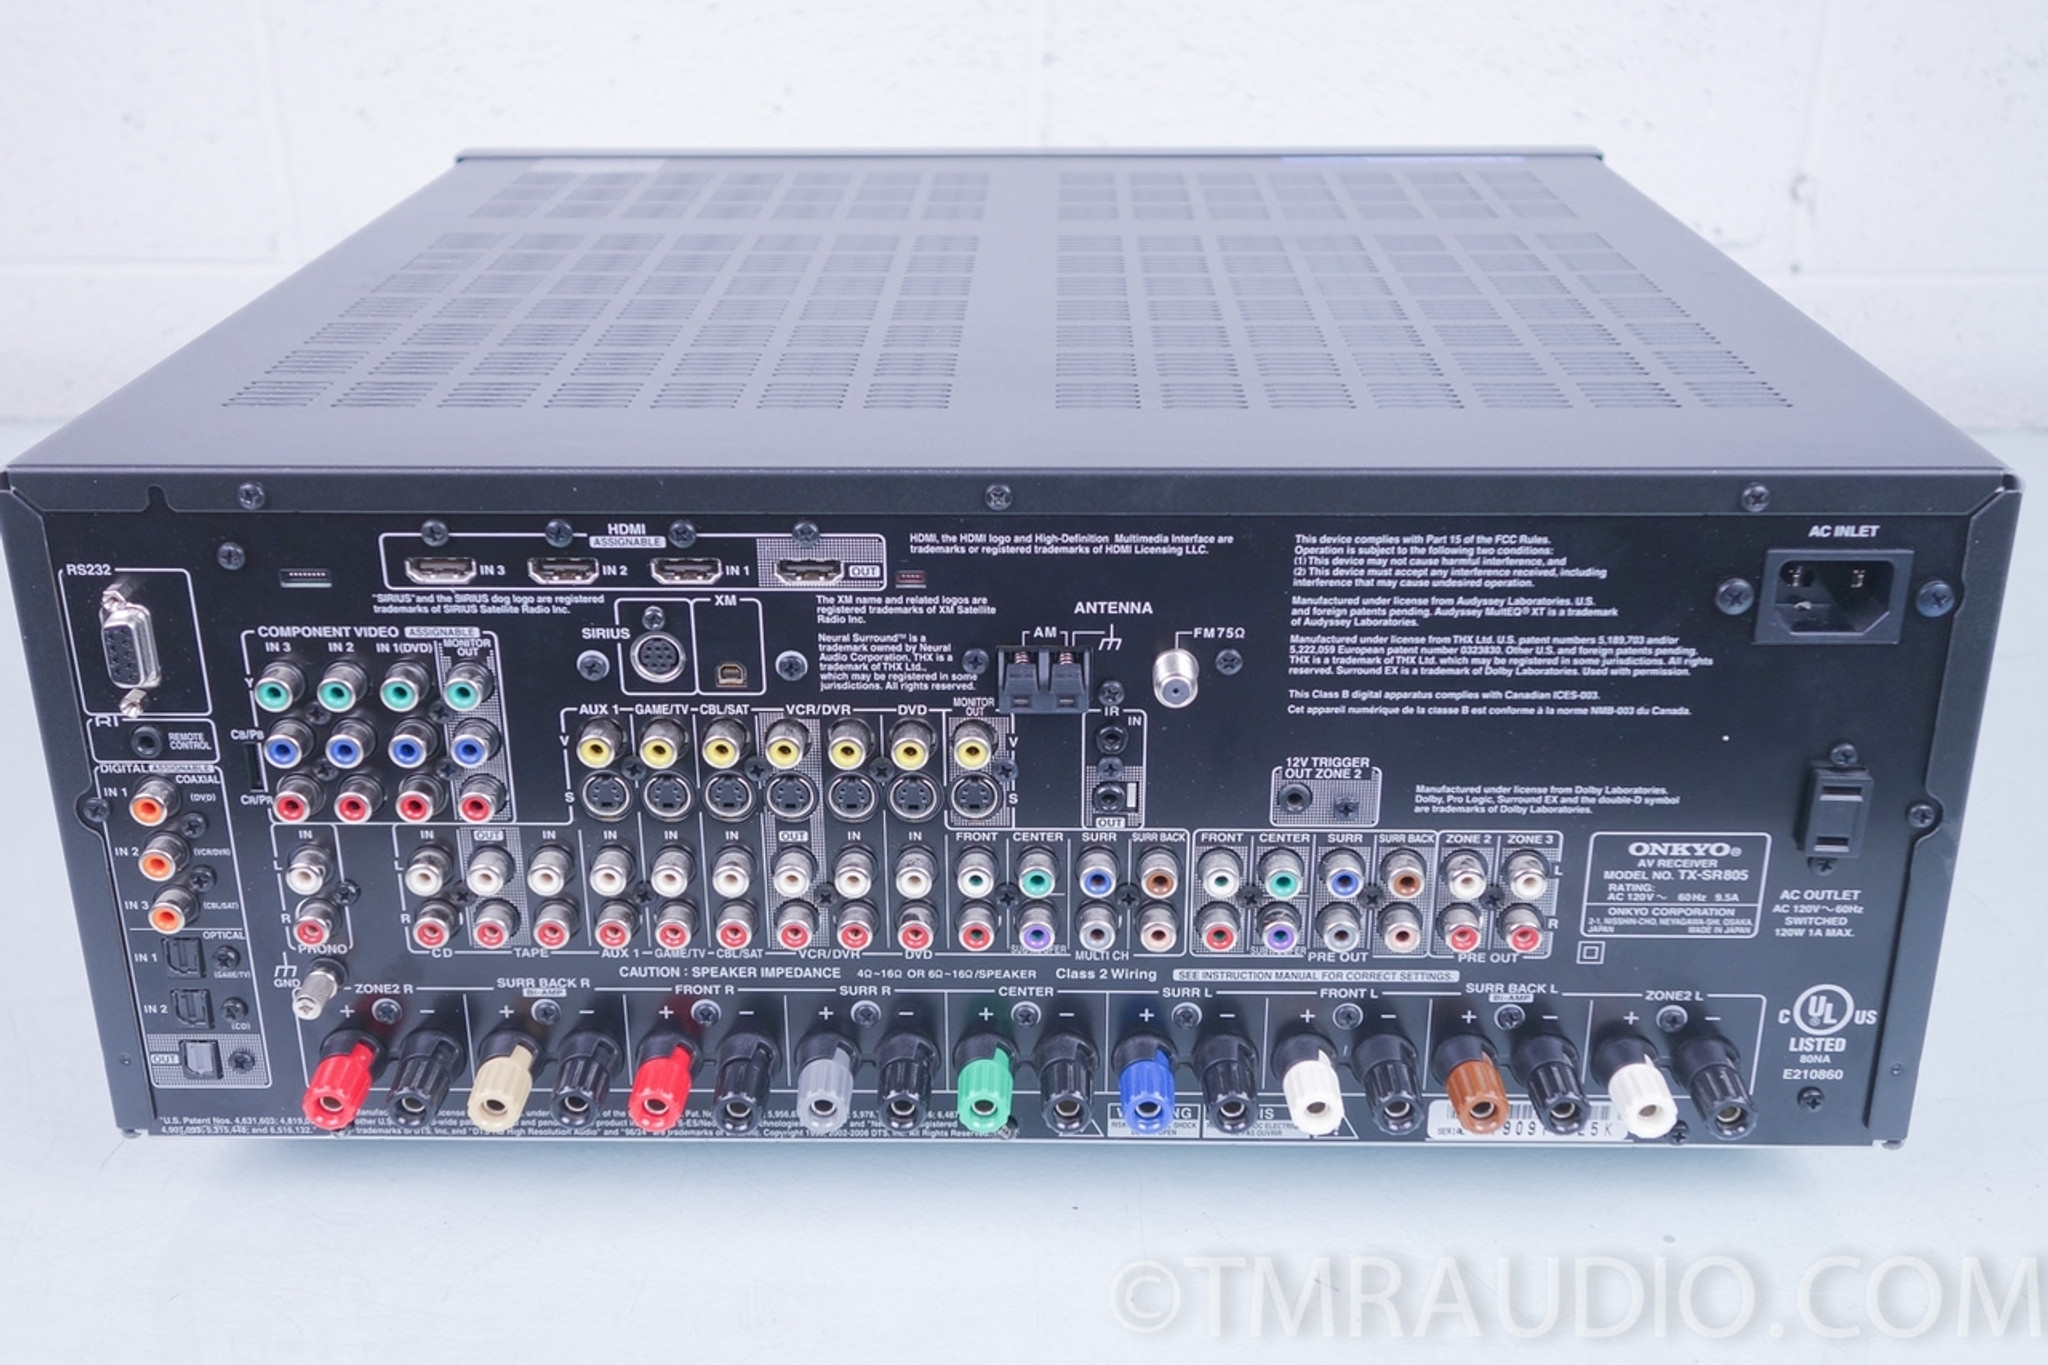 medium resolution of onkyo tx sr805 7 1 channel home theater receiver in factory box